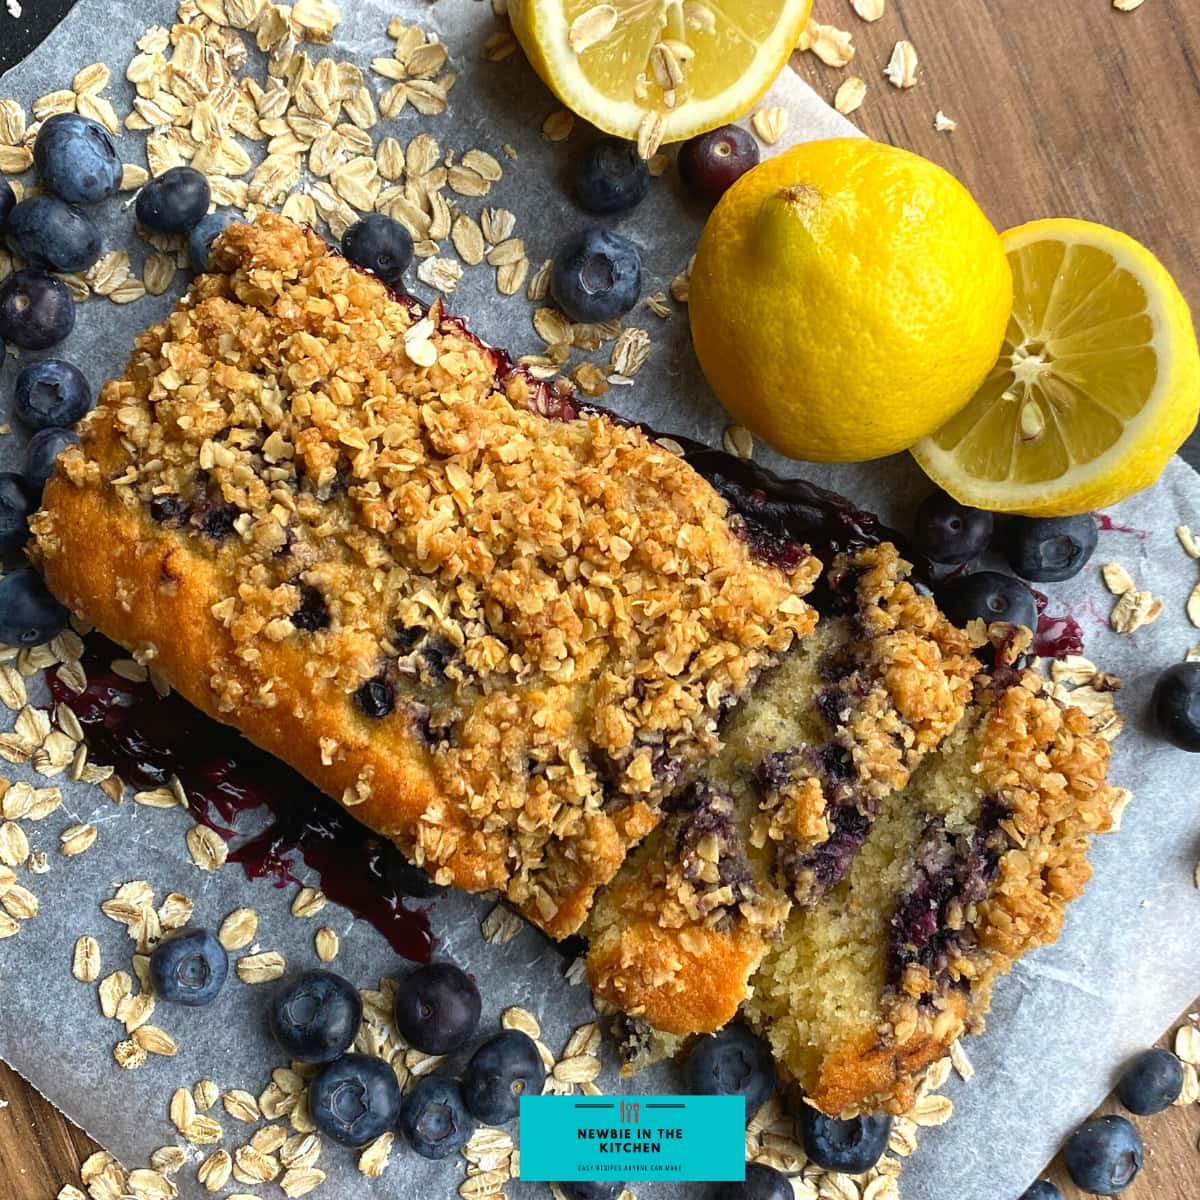 Easy Blueberry and Lemon Crumble Cake. Deliciously soft & moist cake packed with blueberries and a hint of lemon. Topped with a crumble topping. Easiest simple cake recipe ever!